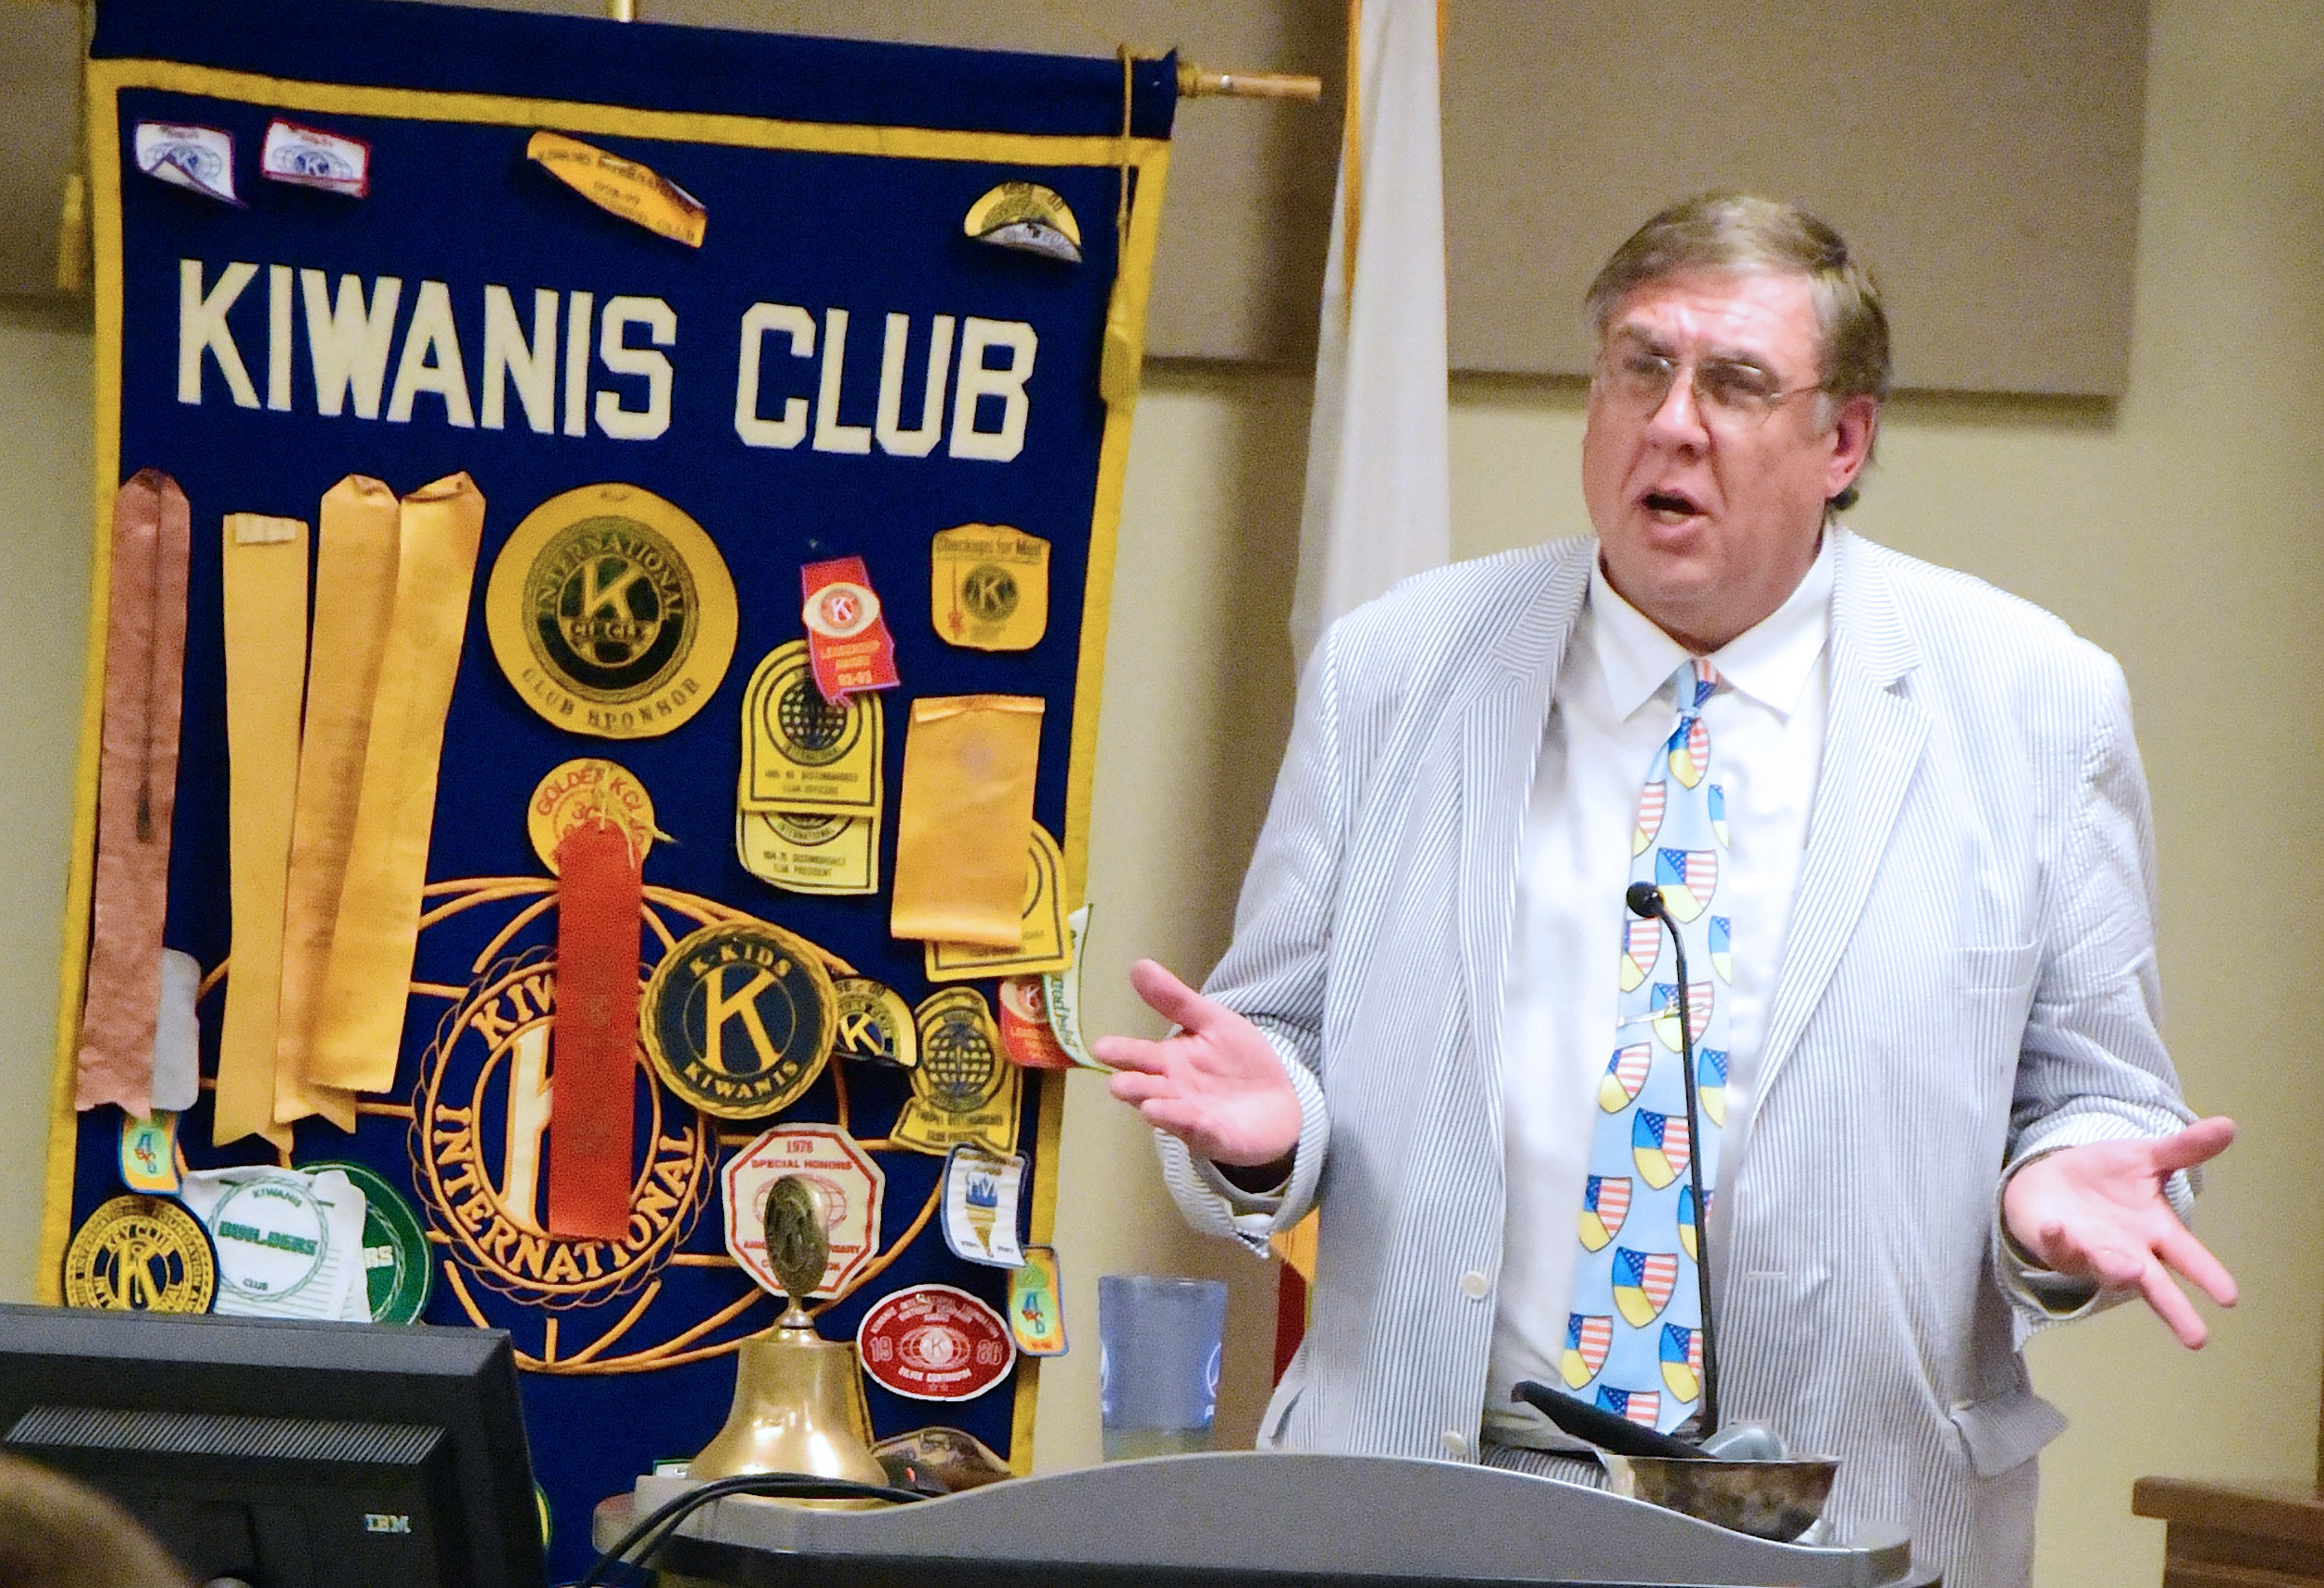 Scotty Colson, director of Alabama's Sister Cities International Program, was the guest speaker at Monday's meeting of the Kiwanis Club of Jasper. The city is in the process of joining the Sister Cities program.  Daily Mountain Eagle - Ron Harris